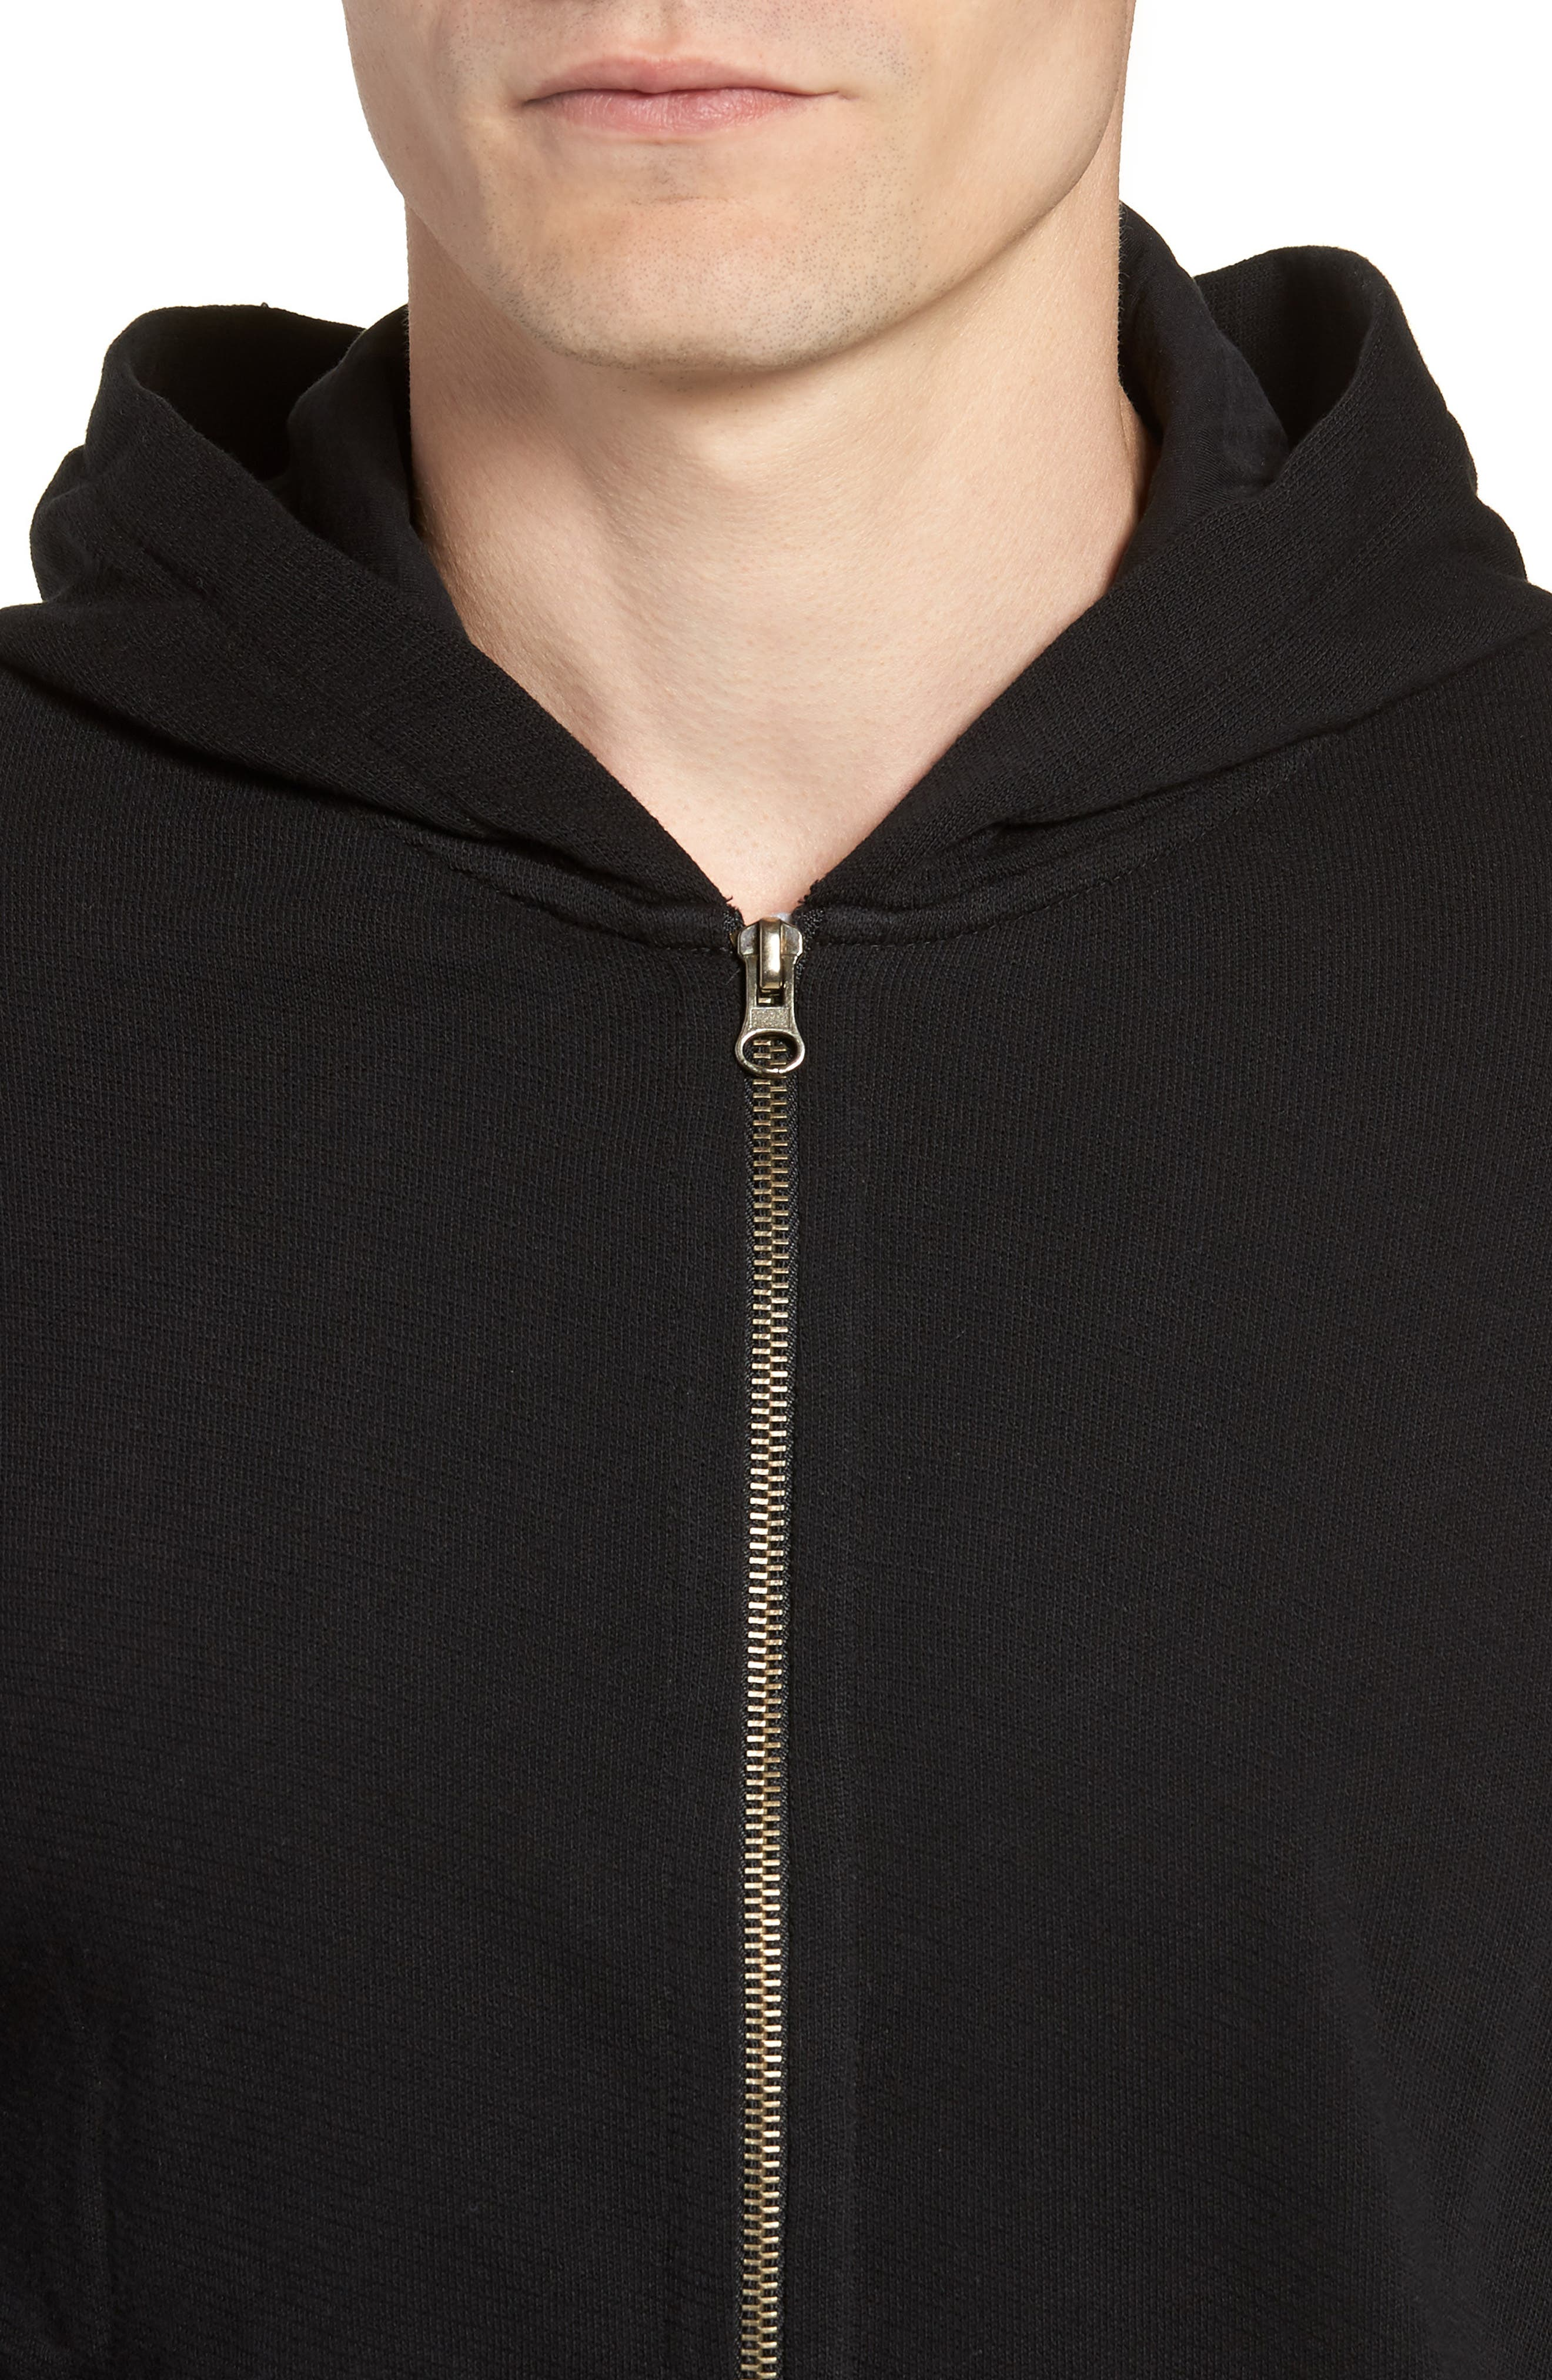 French Terry Zip Hoodie,                             Alternate thumbnail 3, color,                             Black